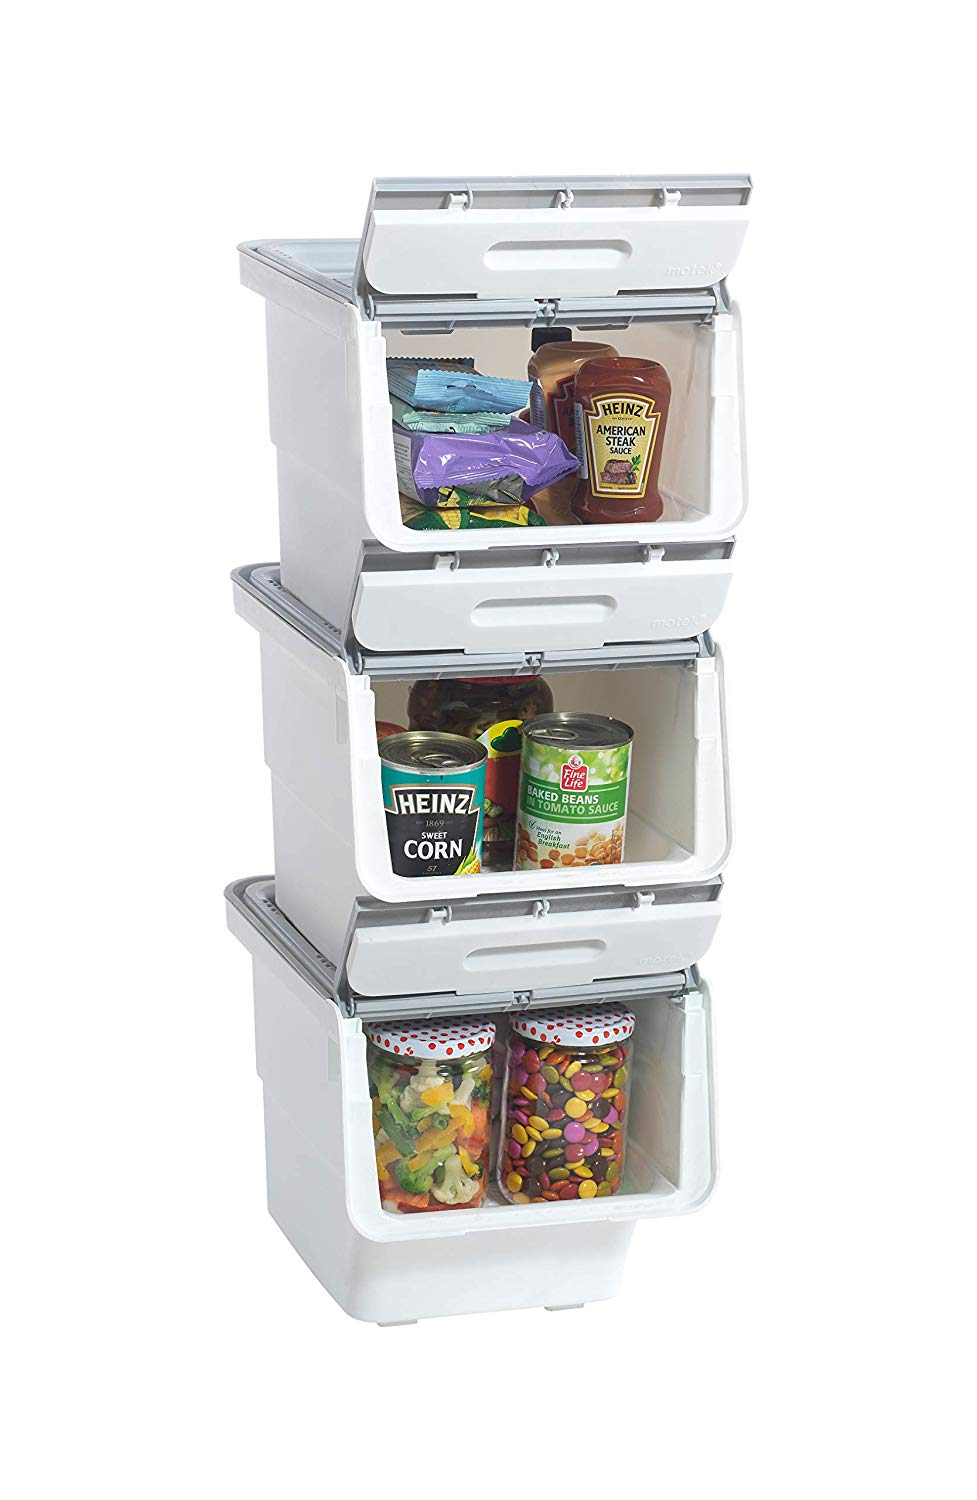 Mabel Home Storage Bins With Lid Stackable Storage Bins Set Of 3 Good For Kitchen Bathroom Garage Office 2 Size 4 Colour Extra Food Storage Container Included White Grey 14x18x37